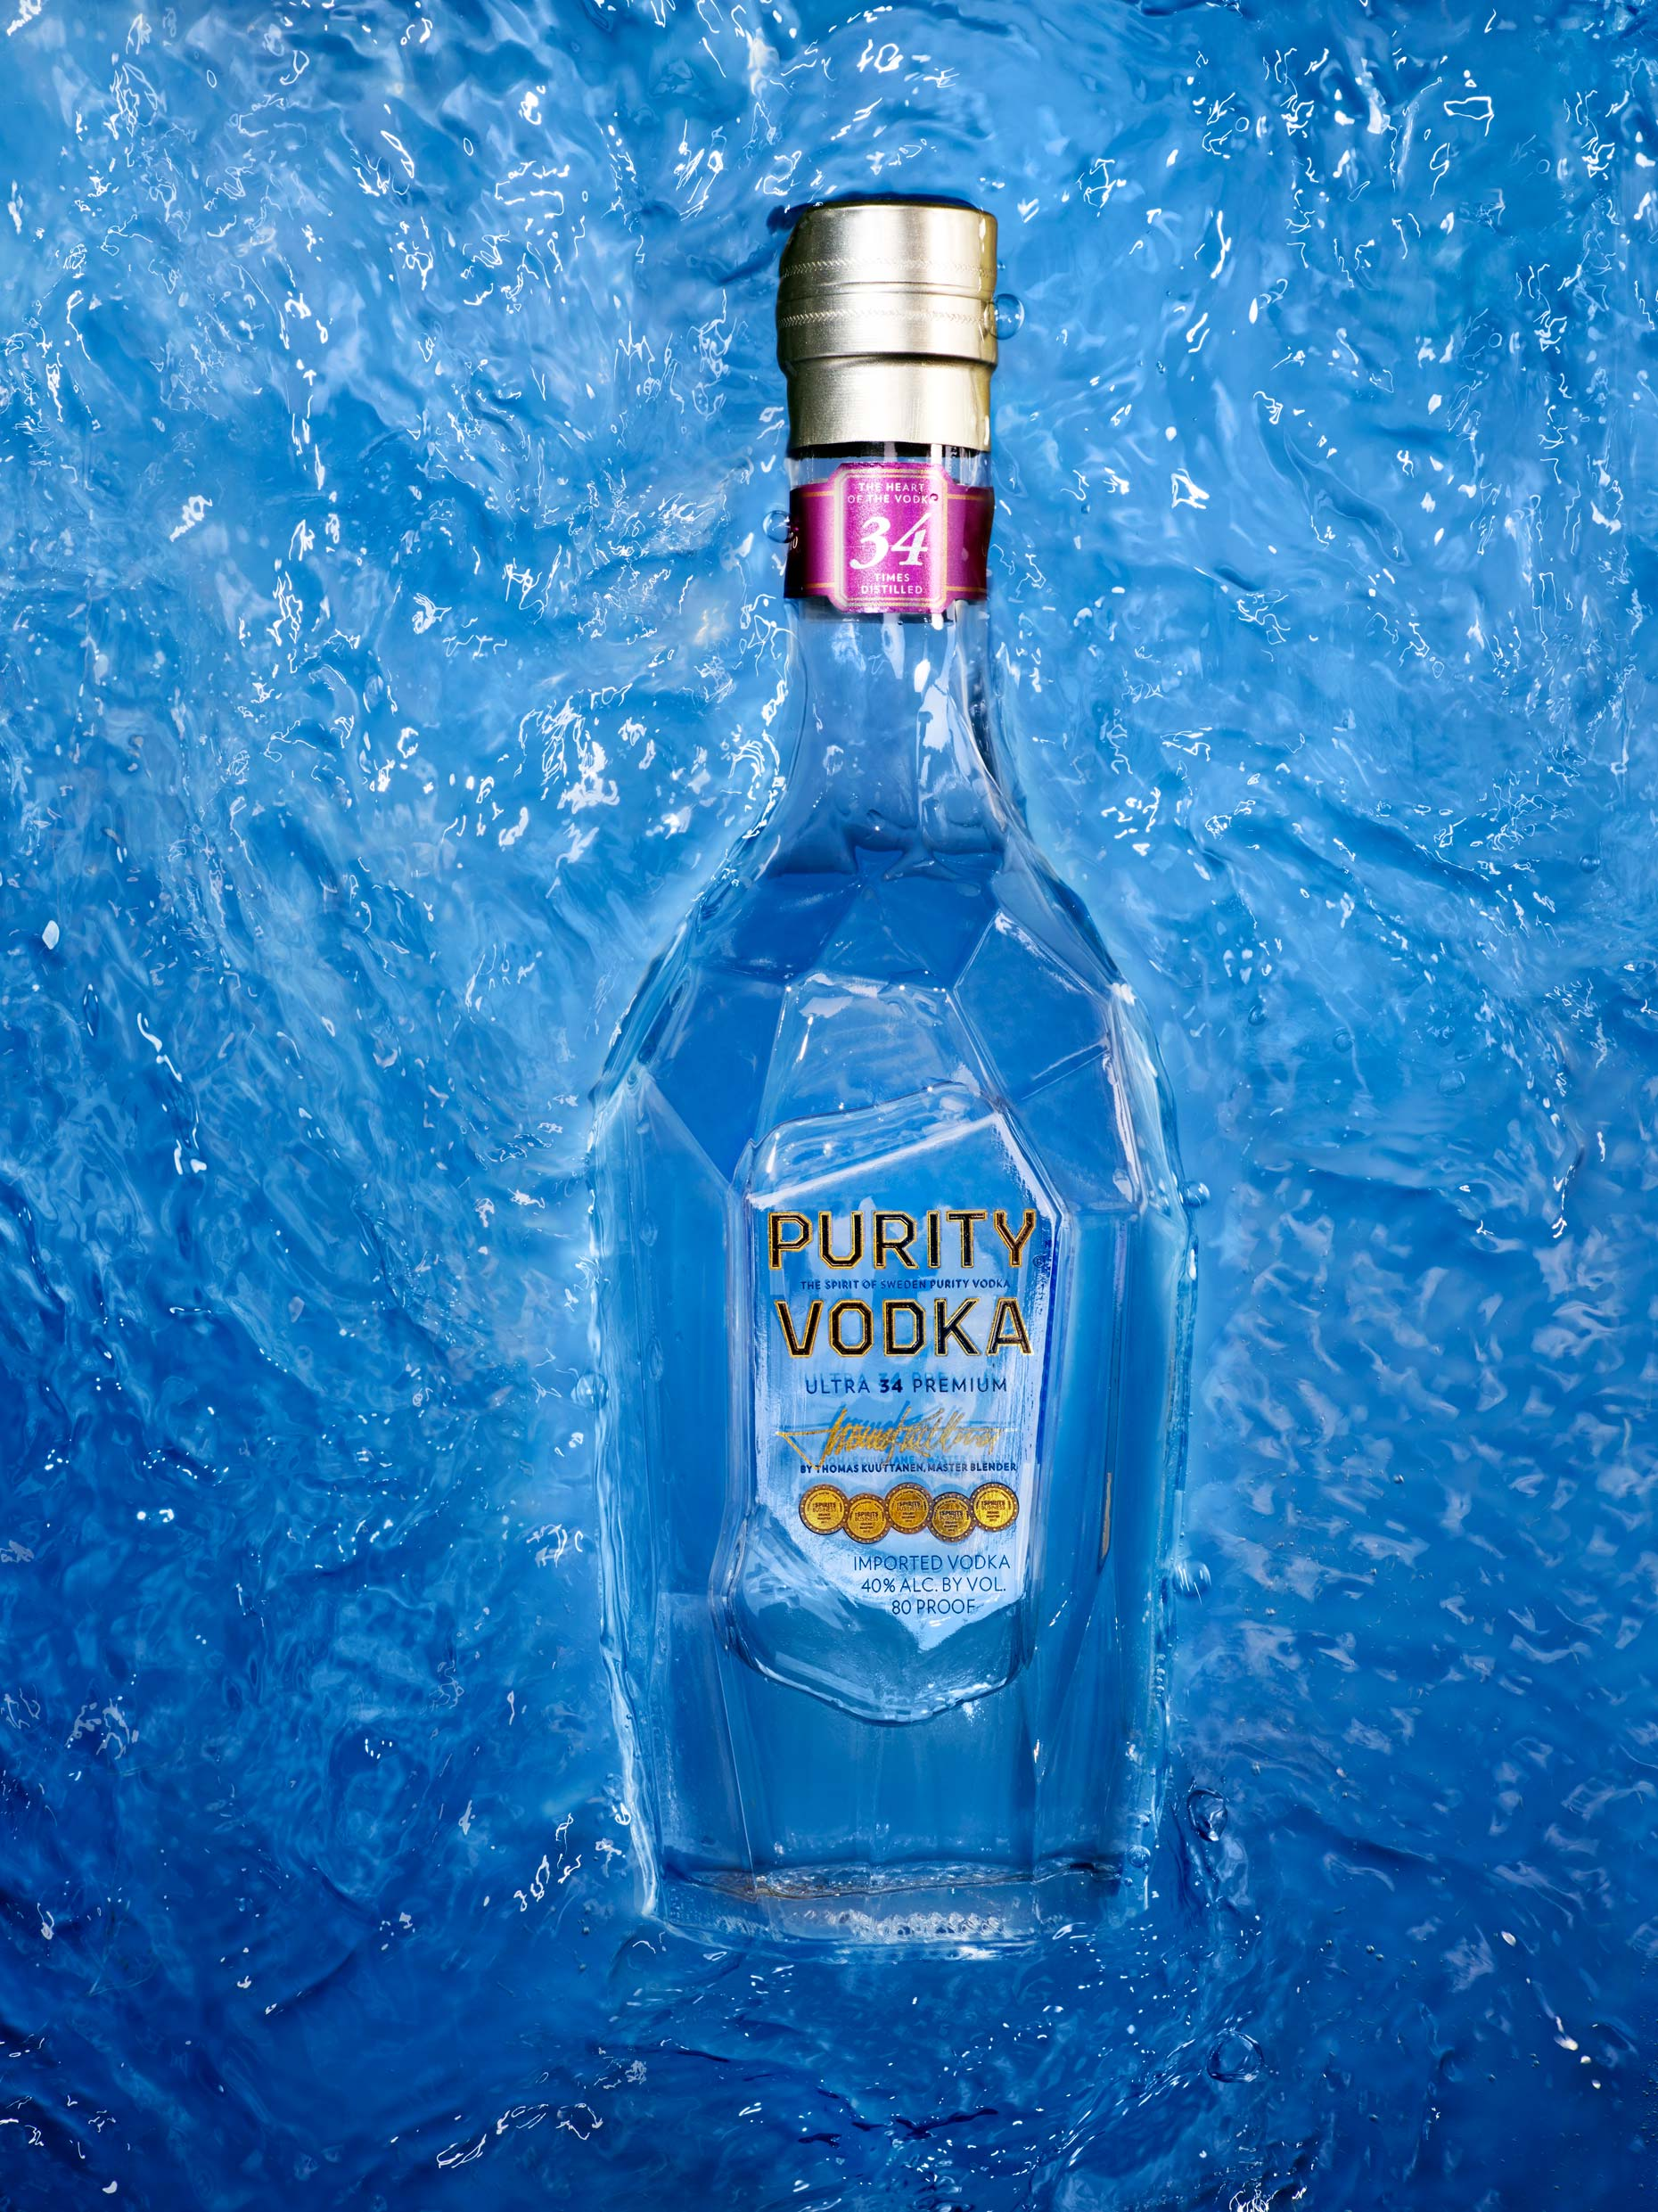 Adrian Mueller Photographer-001h_liquids_PurityVodka-Adrian_Mueller_Drinks_Photographer_NewYork